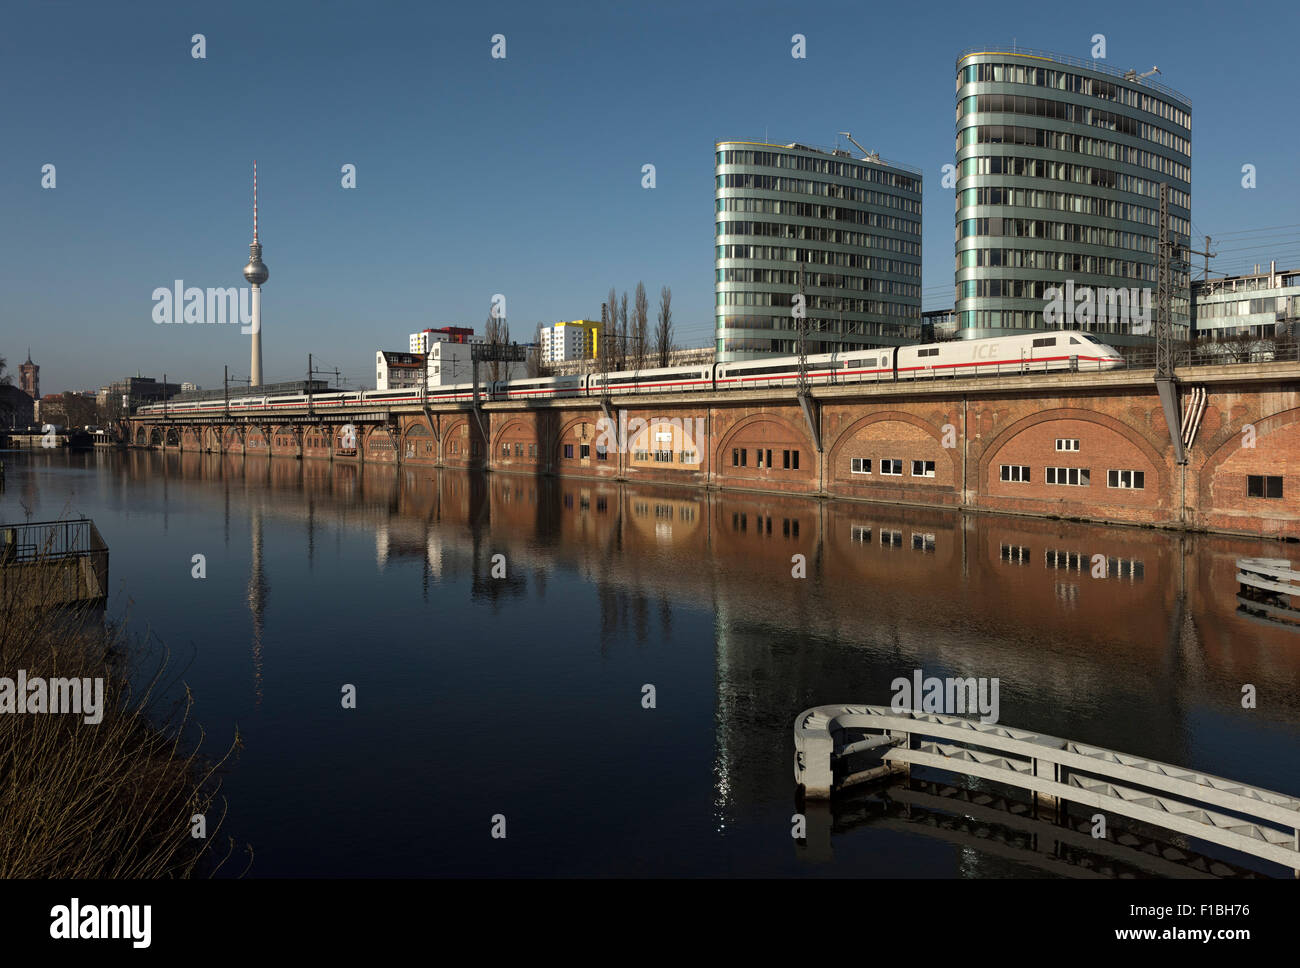 Berlin, Germany, the Triassic, the TV tower and a ICE on the River Spree - Stock Image